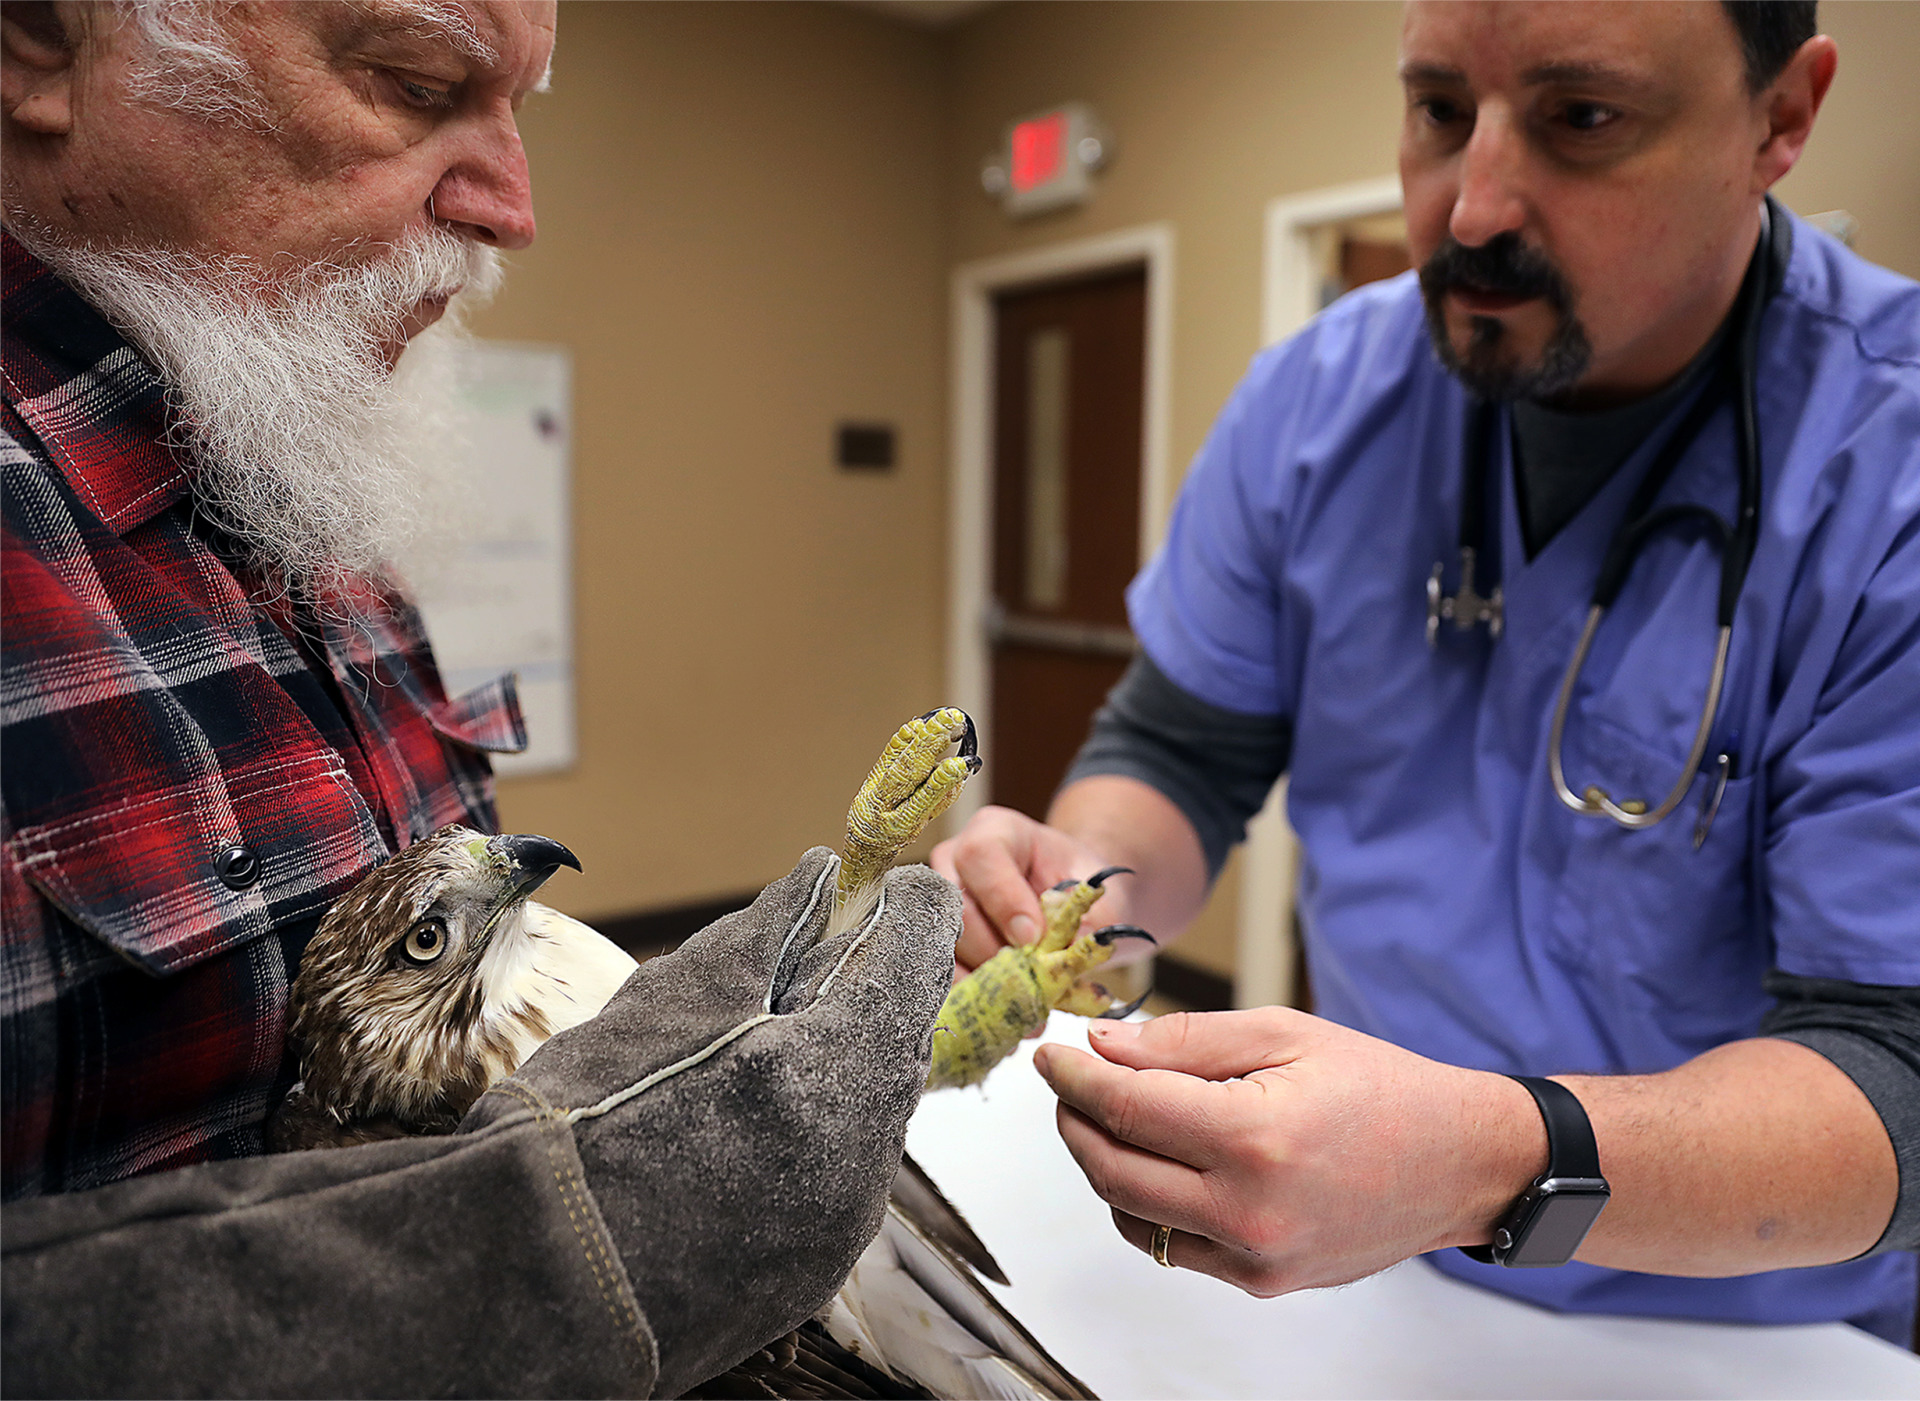 <strong>Knox Martin and David Hannon inspect an injured juvenile red tail hawk at Hannon&rsquo;s Southwind PetVax office Saturday, Jan. 26. Martin, the director of the Mid-South Raptor Center, has been bringing injured birds of prey to Hannon for over two decades.</strong> (Patrick Lantrip/Daily Memphis)